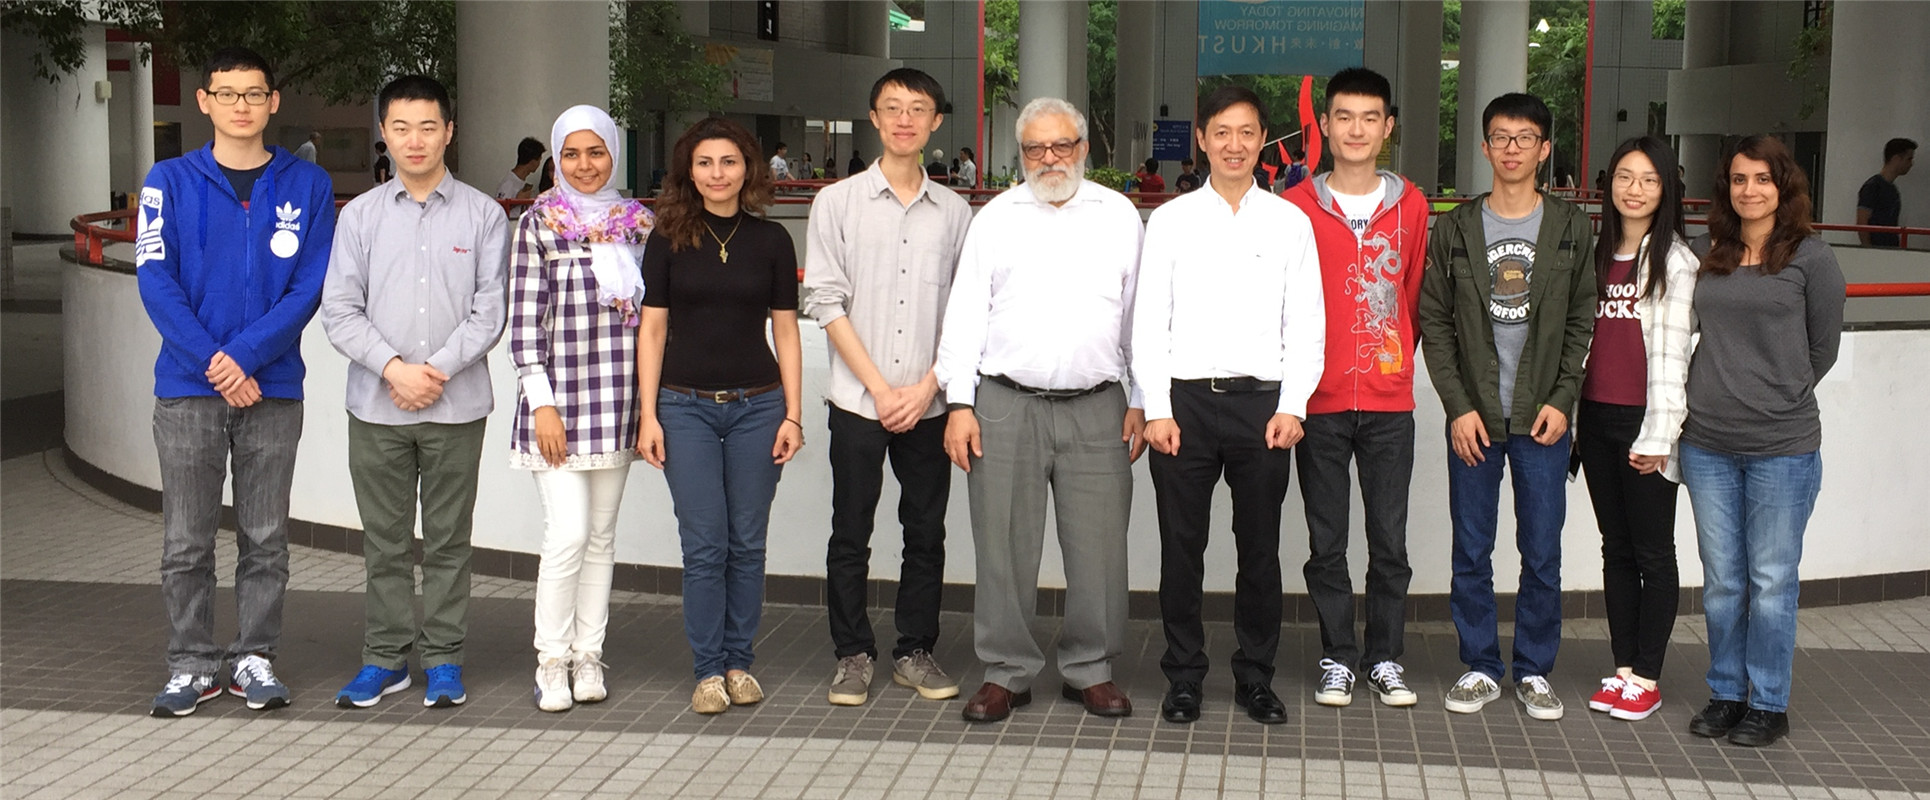 Prof. Mohamed E. El-Hawary visited our group